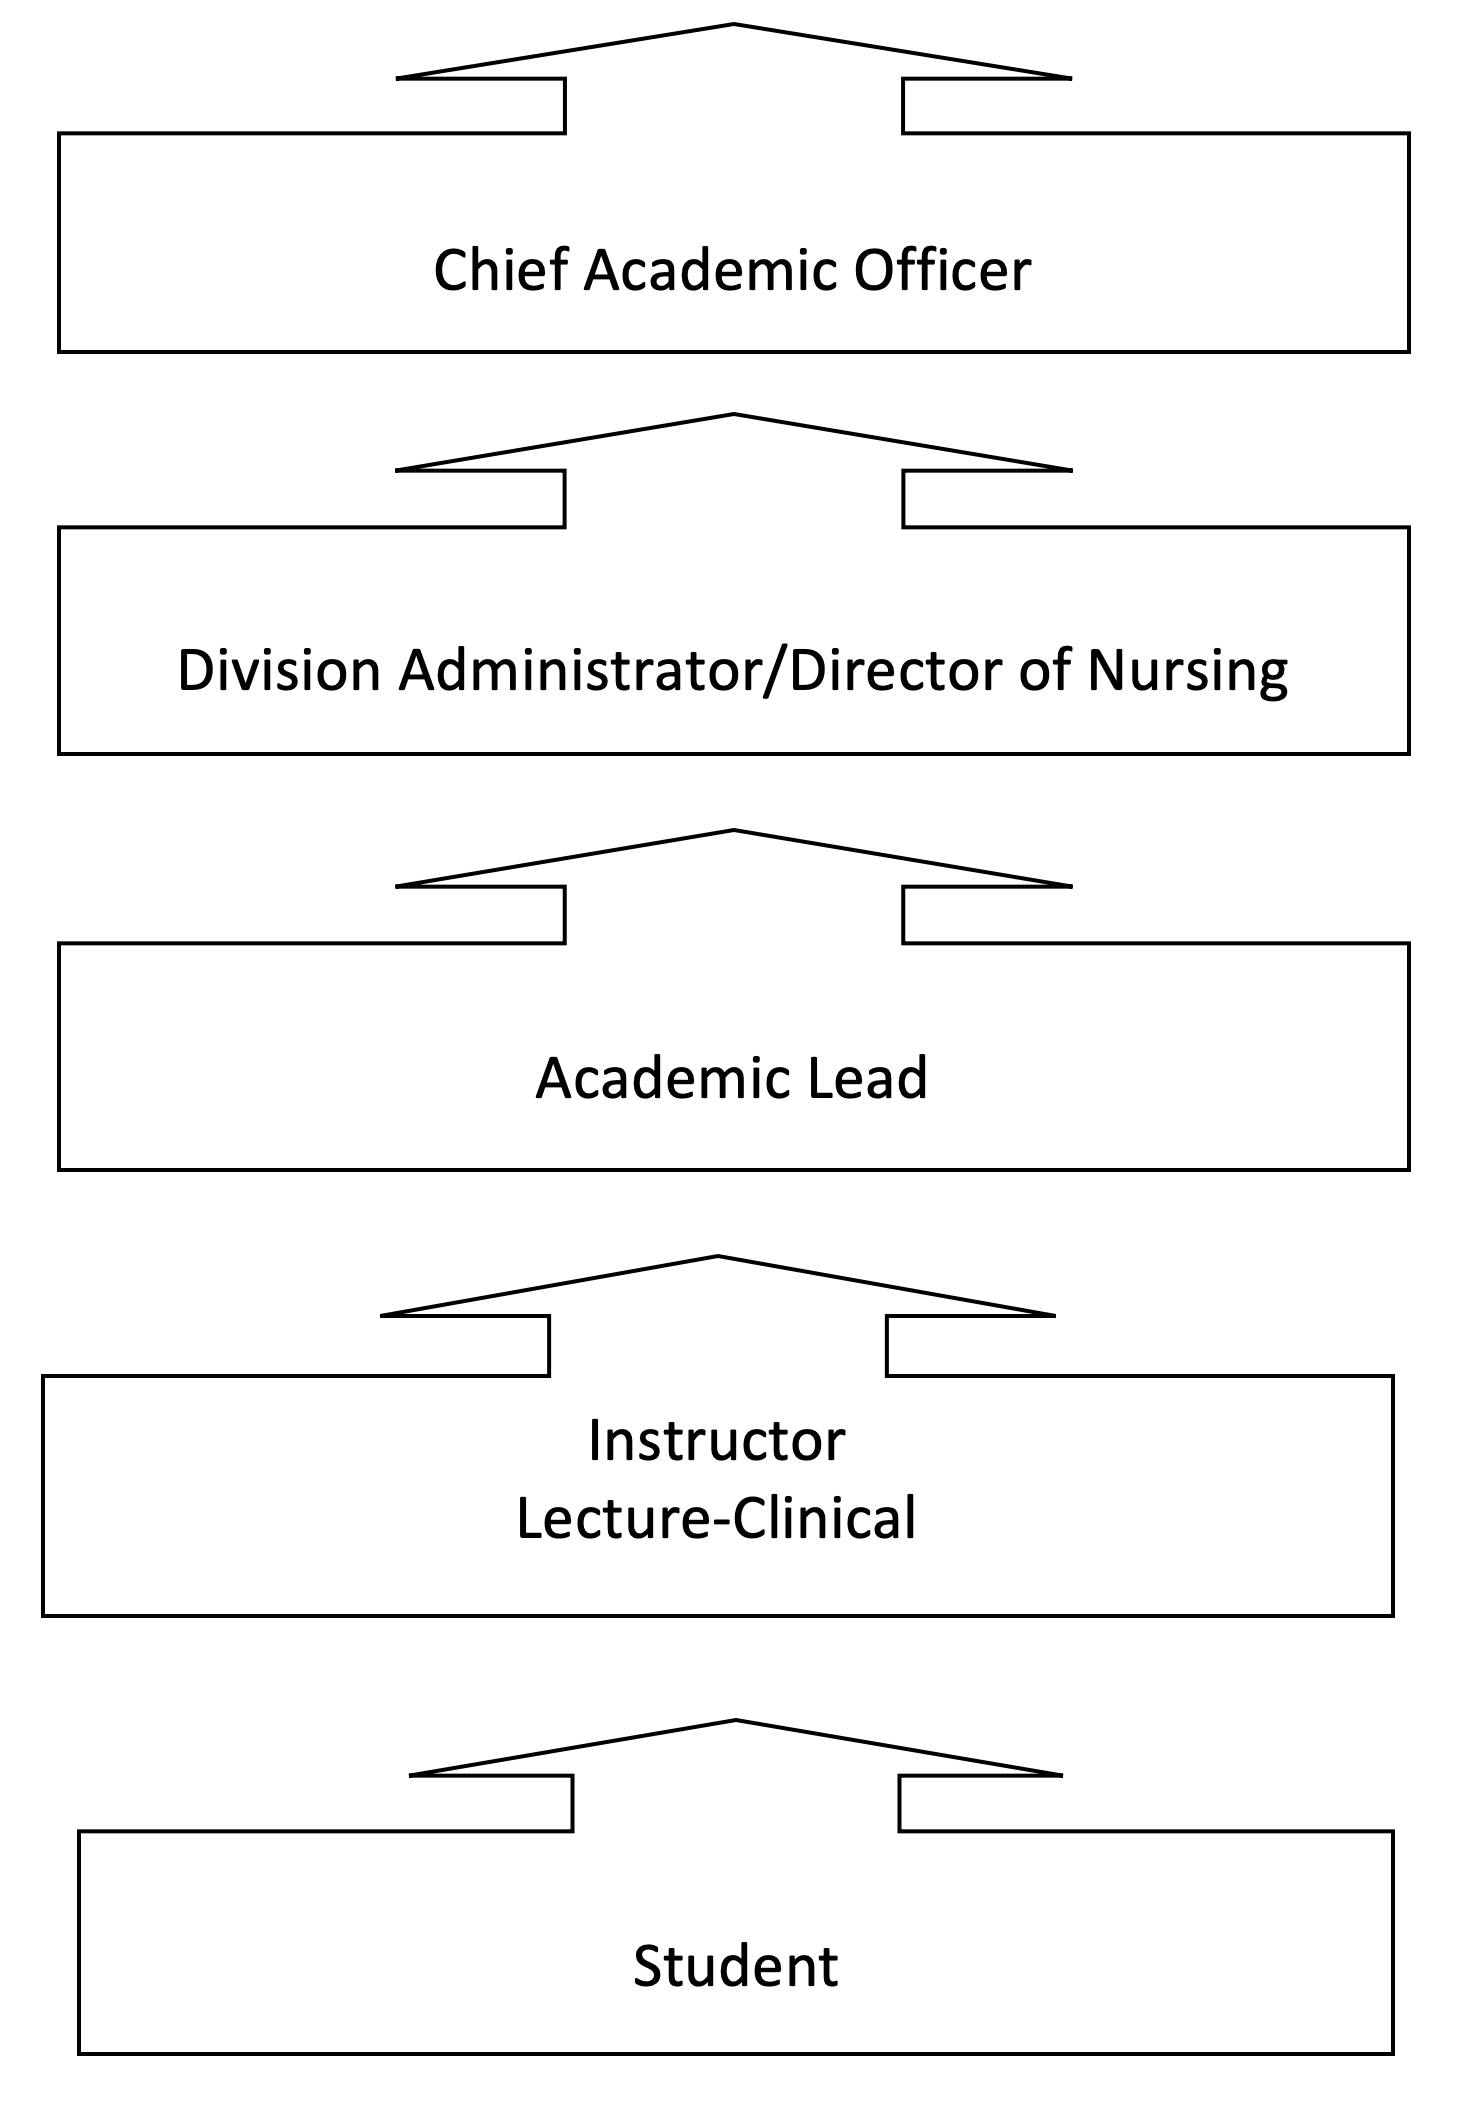 Organizational Chart - Starts at the Student to Instructor, to Academic Lead, to Director of Nursing, to Division Admin to Chierf Academic Officer